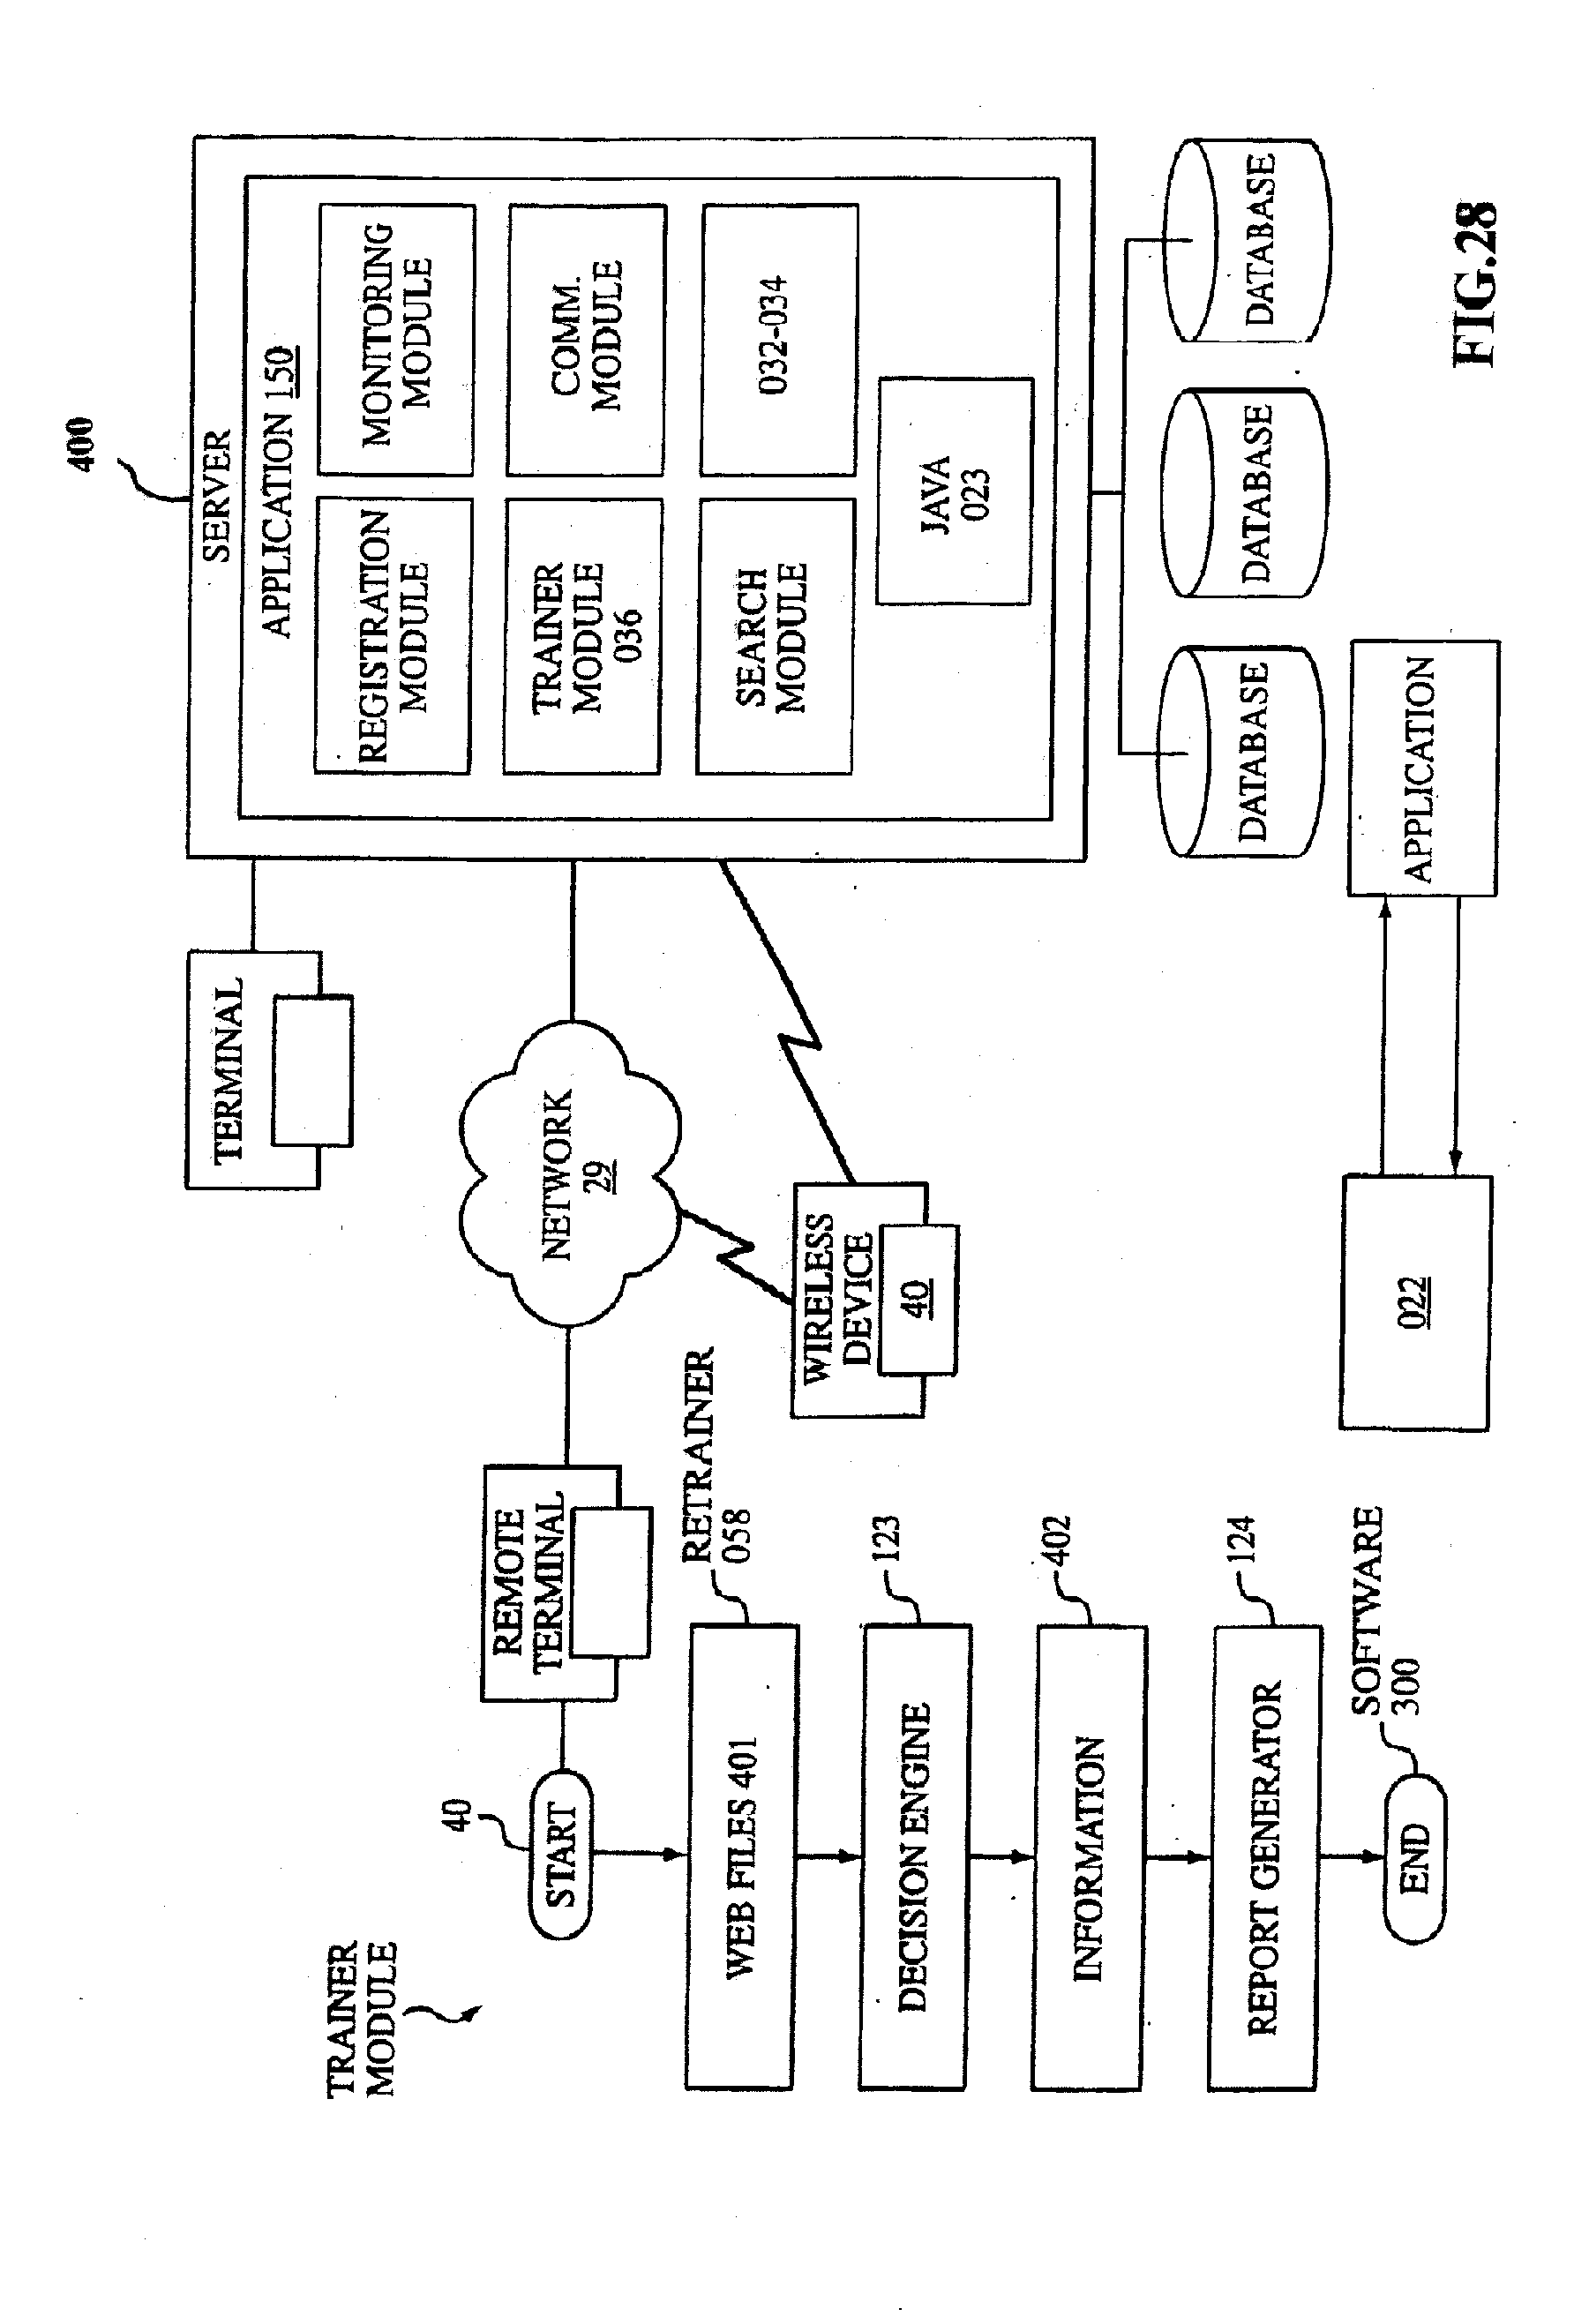 Patent Us20120032876 Mega Communication And Media Apparatus Police Siren Sound Circuit Diagram On Sel Generator Schematic Drawing